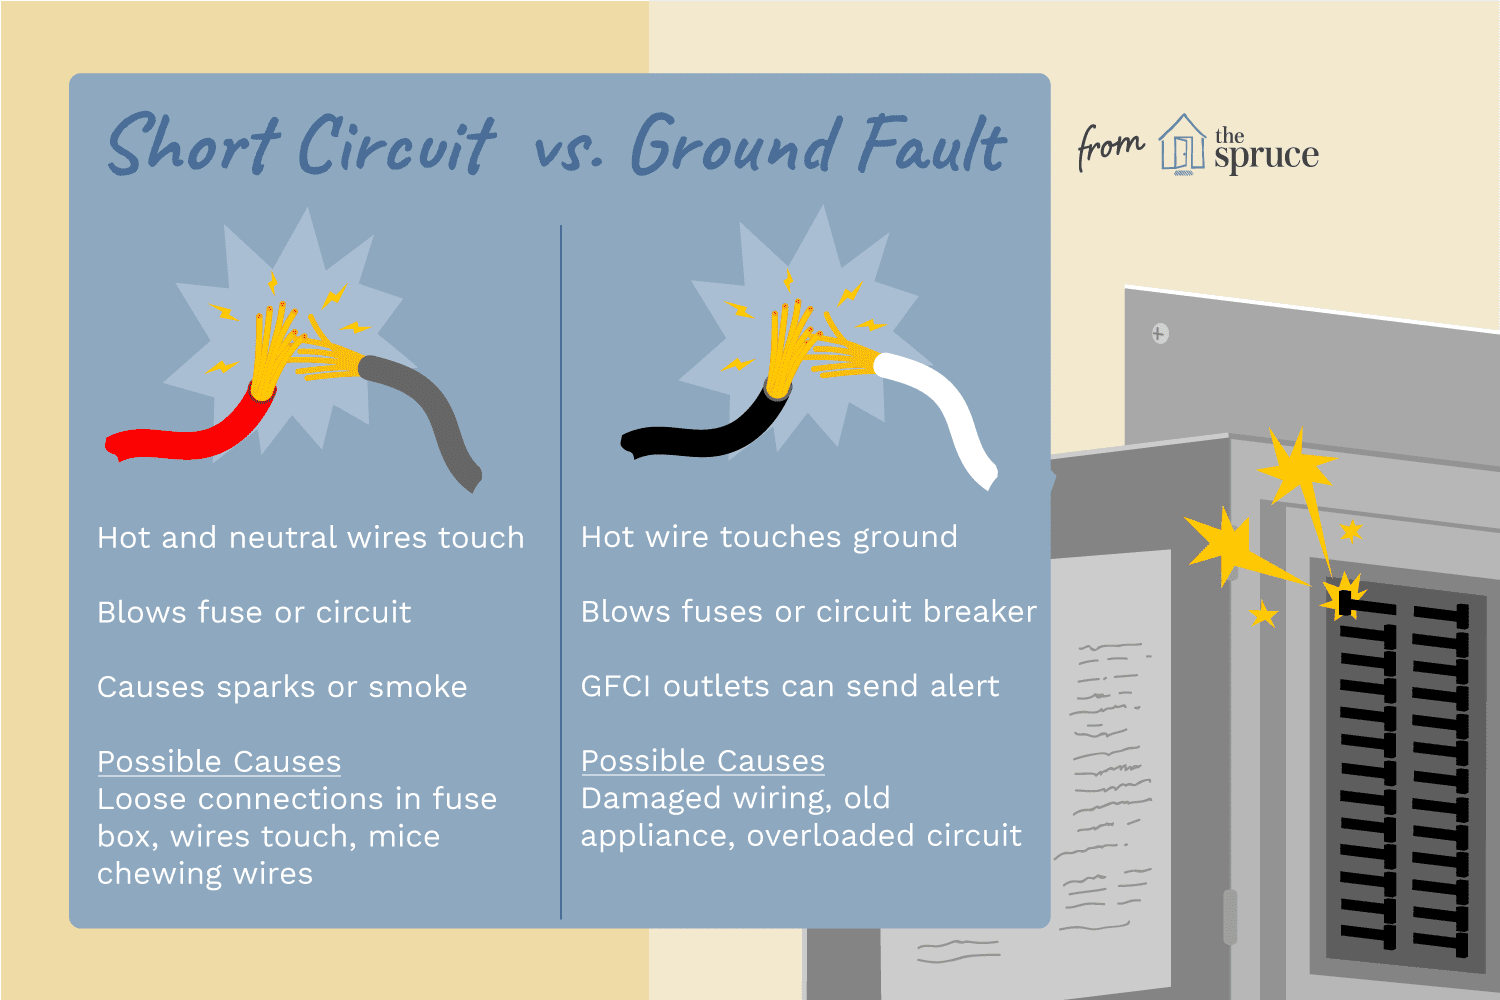 Short Circuit vs. Ground Fault